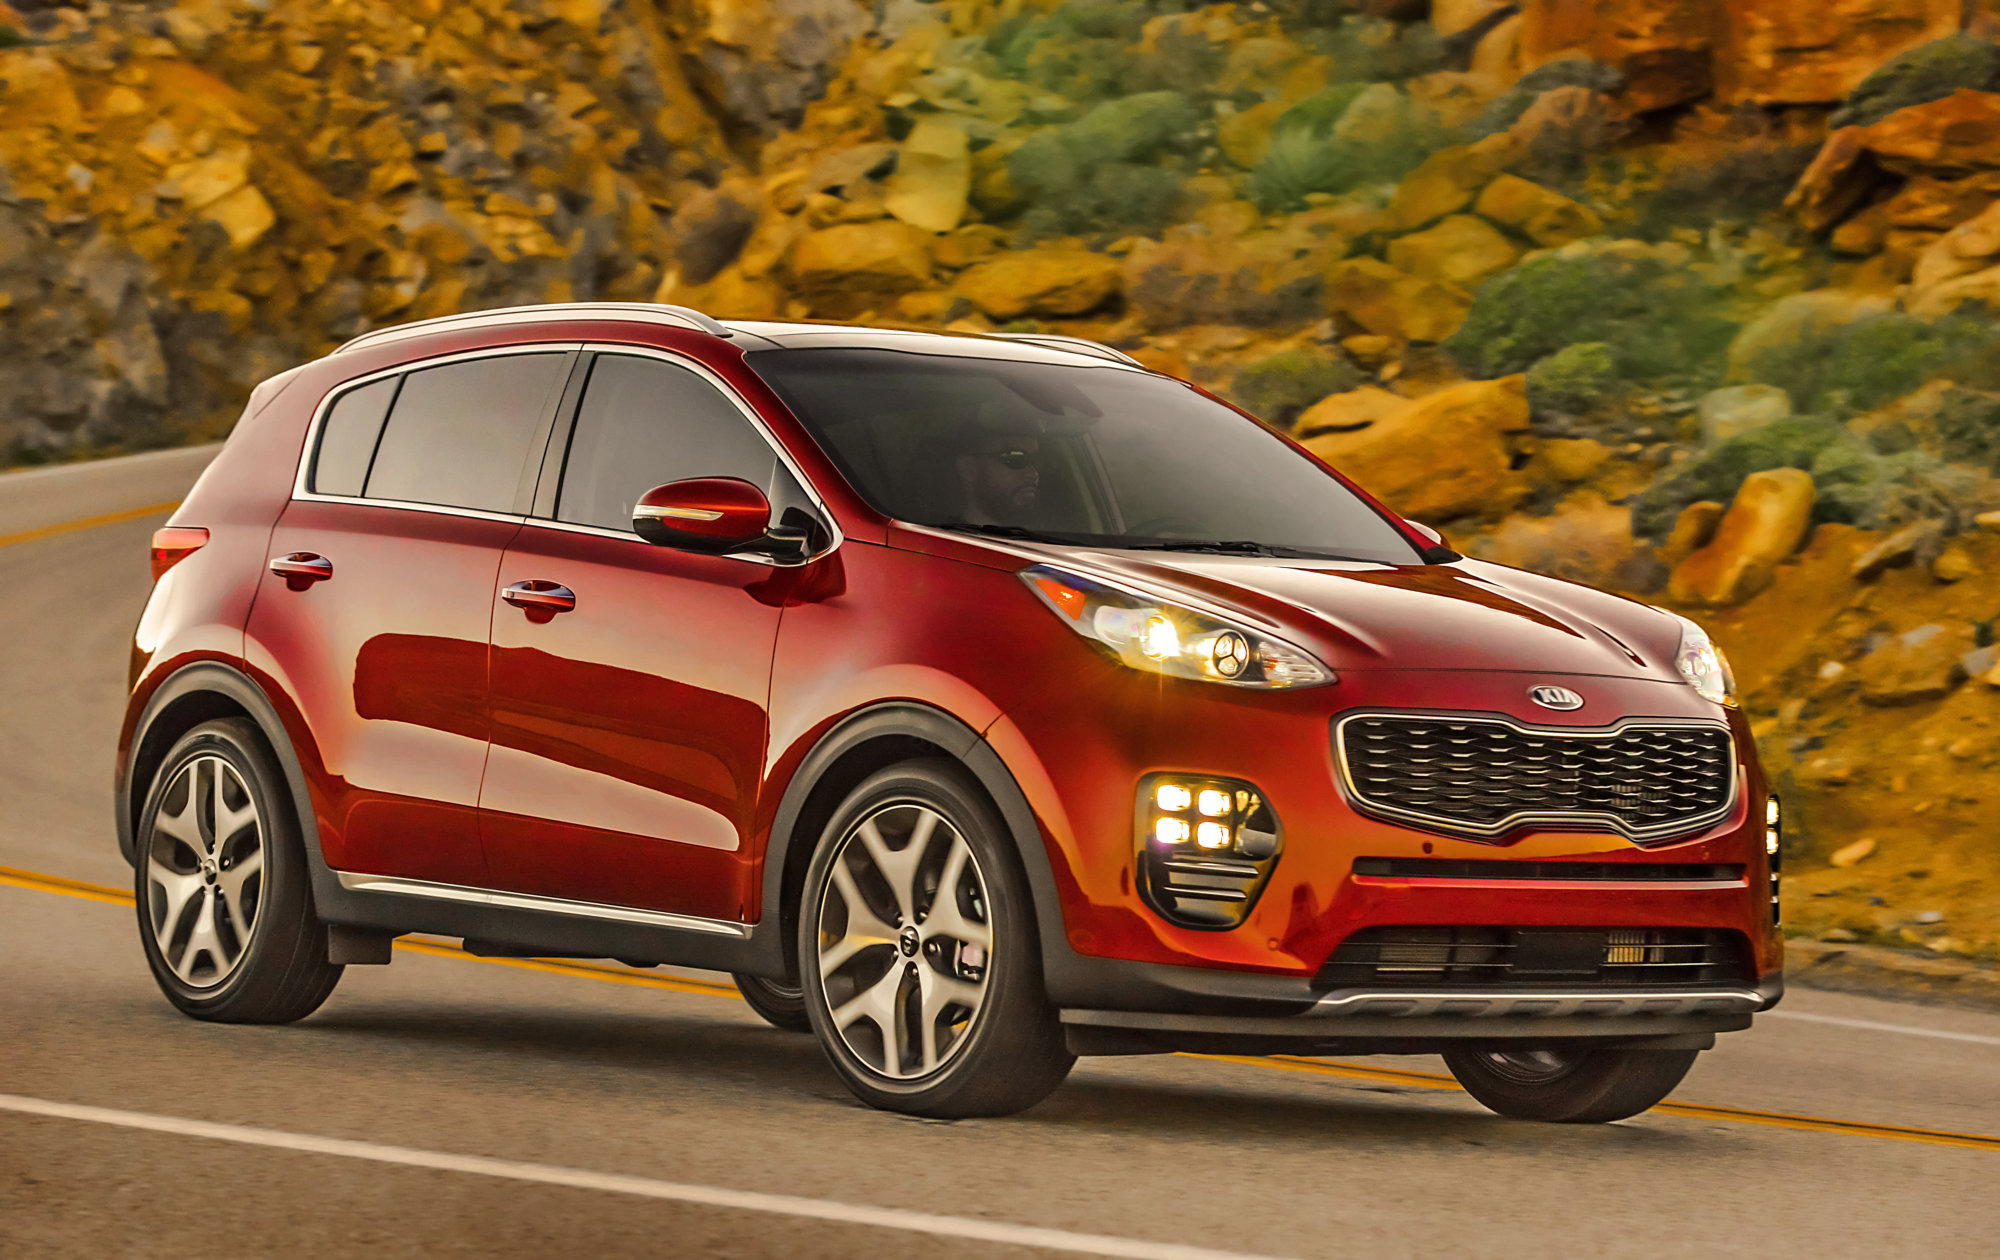 Best New SUV/Crossover for Teens $25,000 to $30,000:  The 2019 Kia Sportage  (Courtesy Kia Motors America)